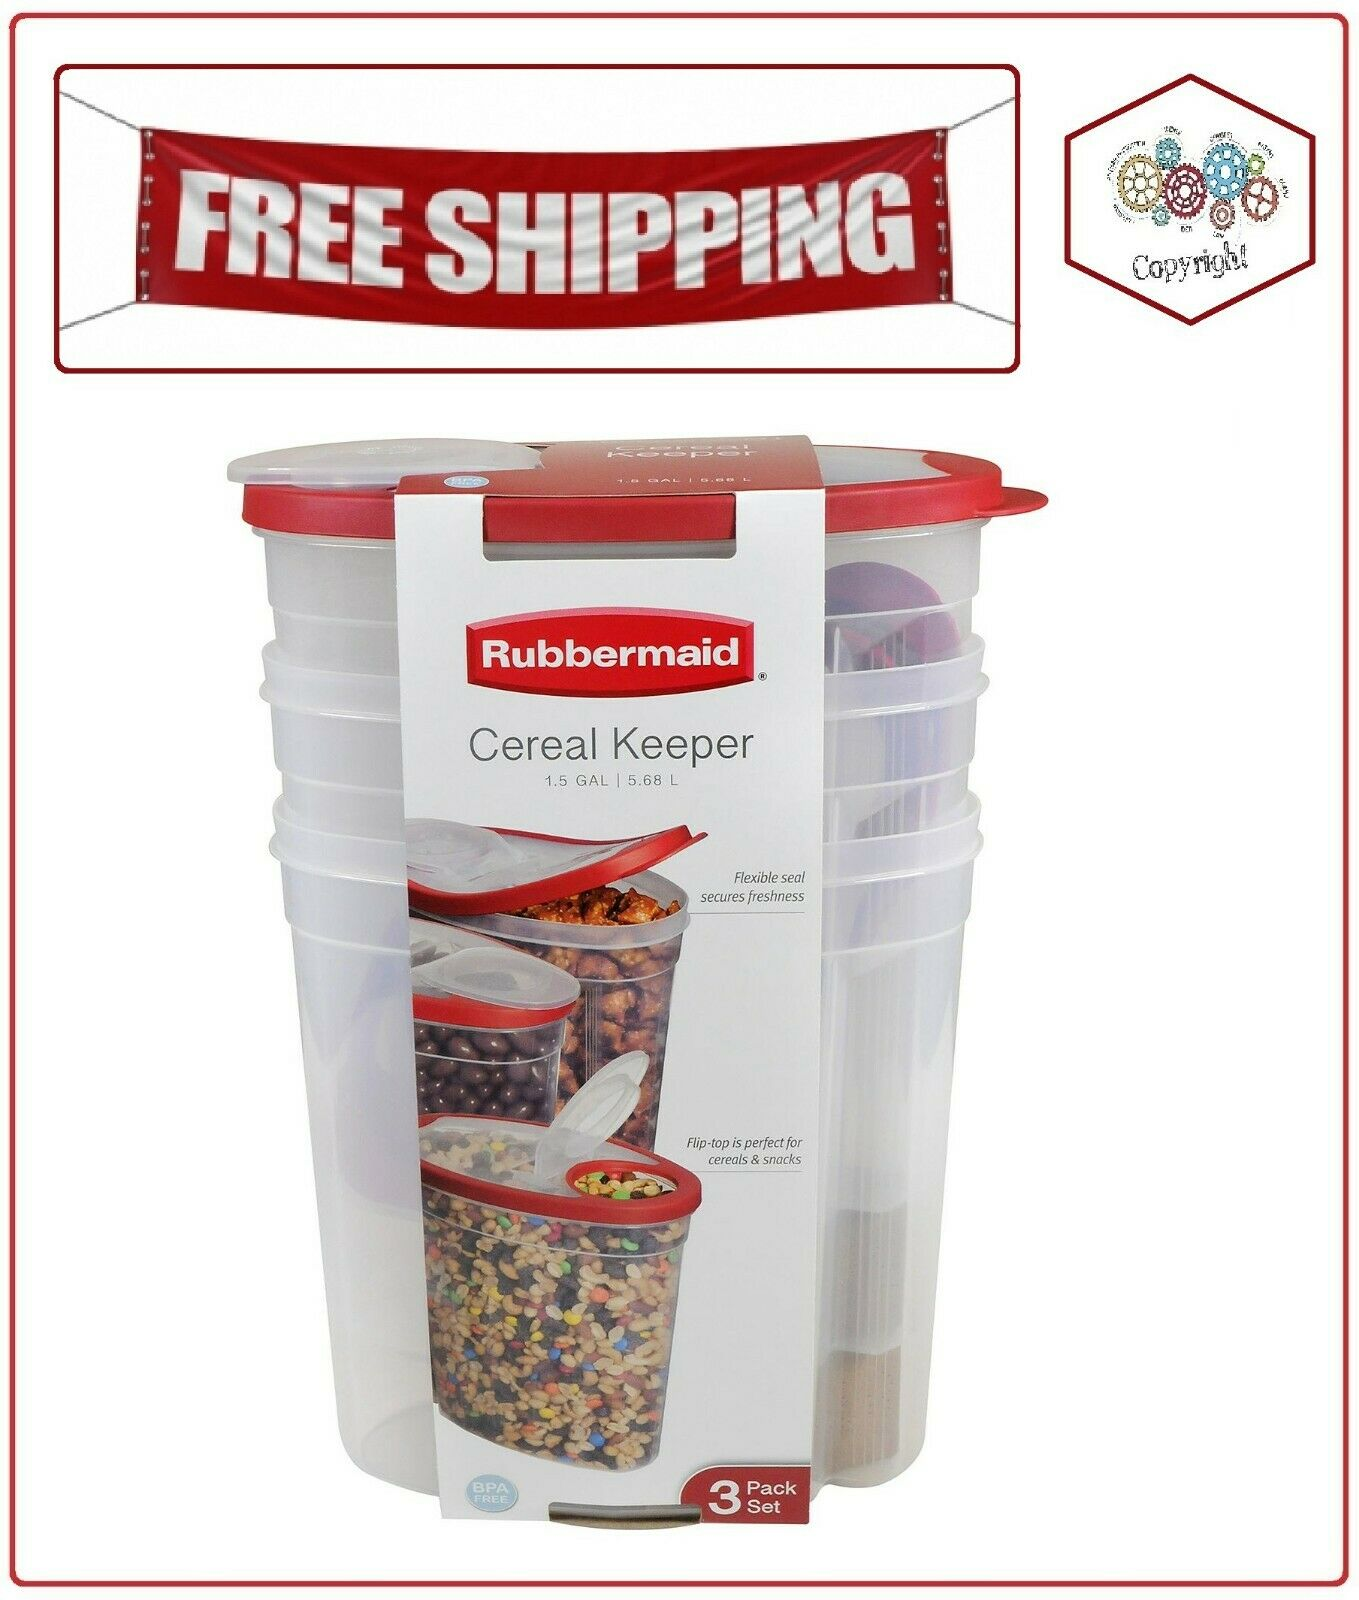 Rubbermaid Cereal Keeper Kitchen Dry Food Storage Container 3 PK Assorted Color 1